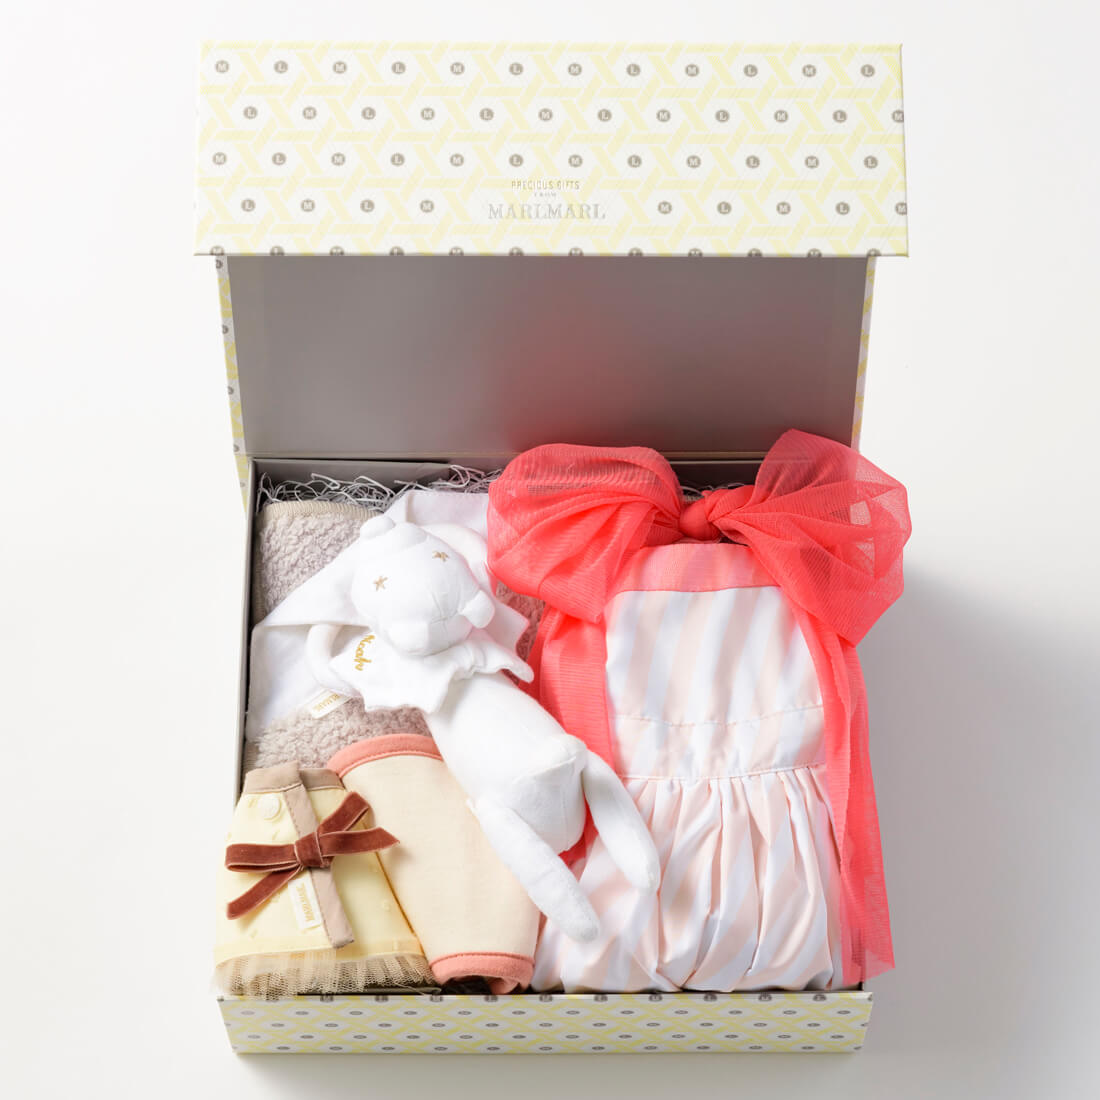 MARLMARL Seasonal Gift Set SAKURA